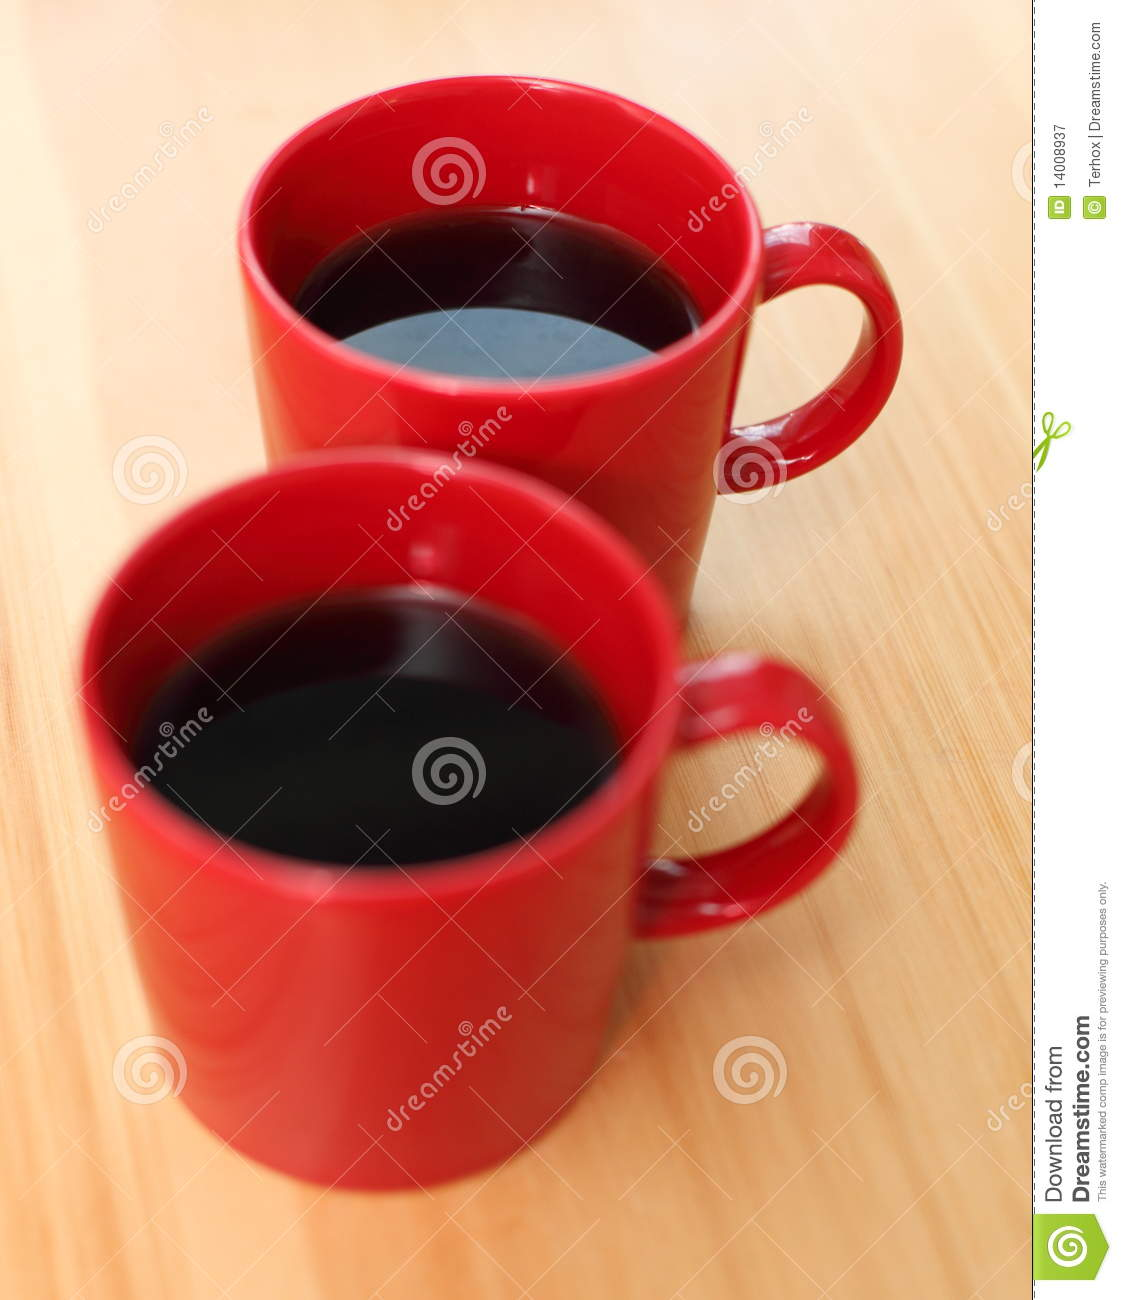 Red Coffee Mugs Royalty Free Stock Photography Image